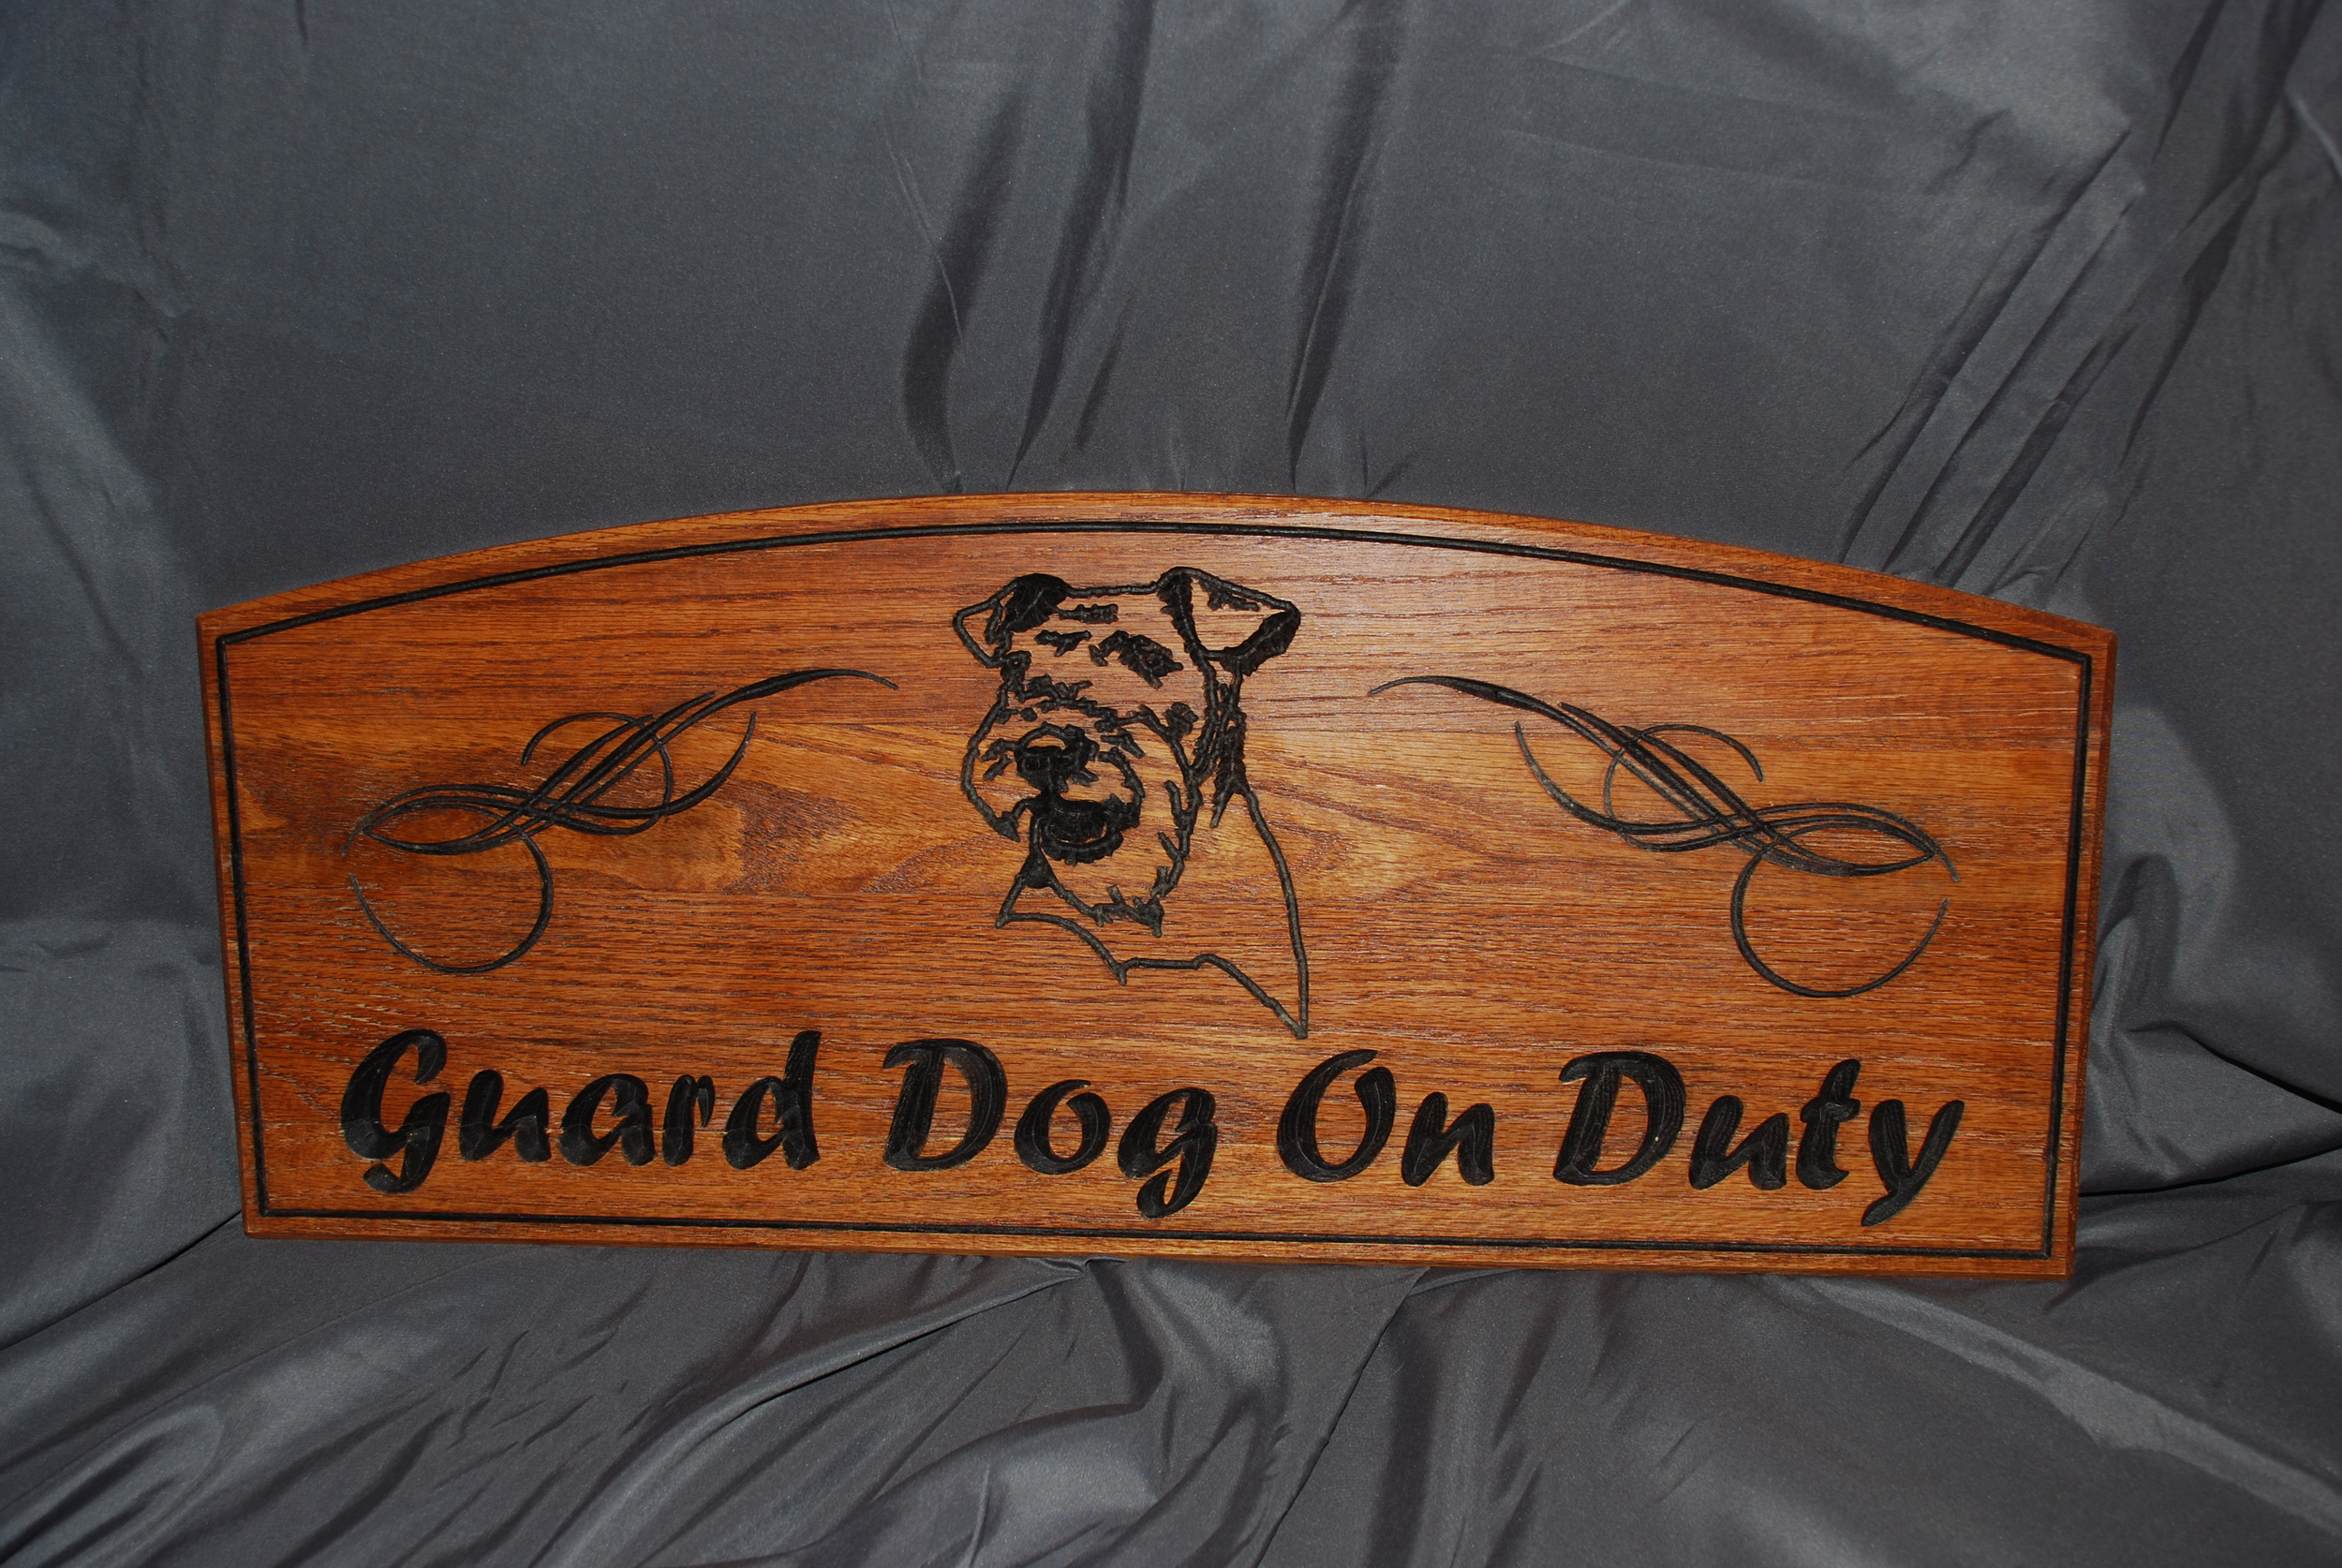 This sign was created using Red Oak stained with a Golden Mahogany finish. The images and lettering were V-carved and then stained a dark brown.